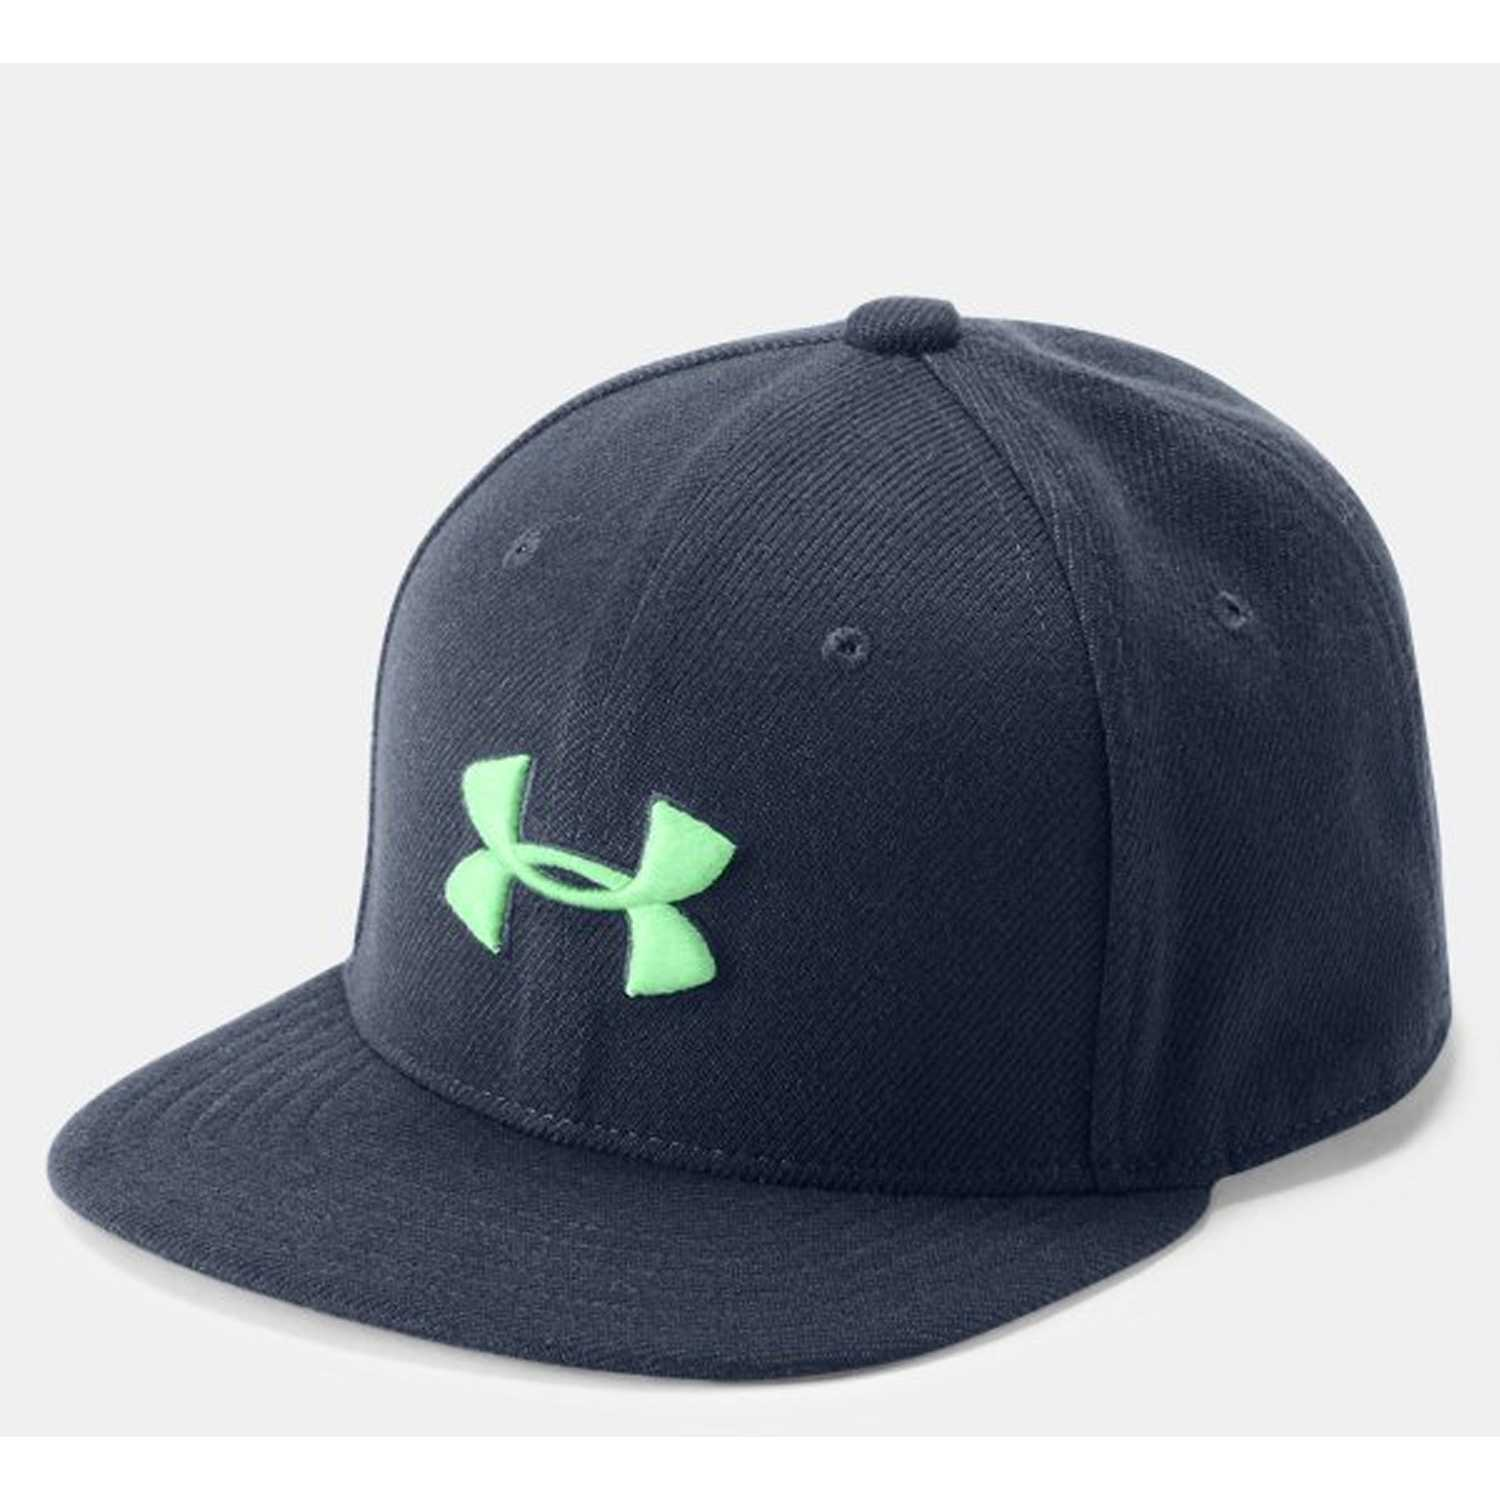 Under Armour boy's huddle snapback 2.0-nvy Acero Sombreros y Gorros